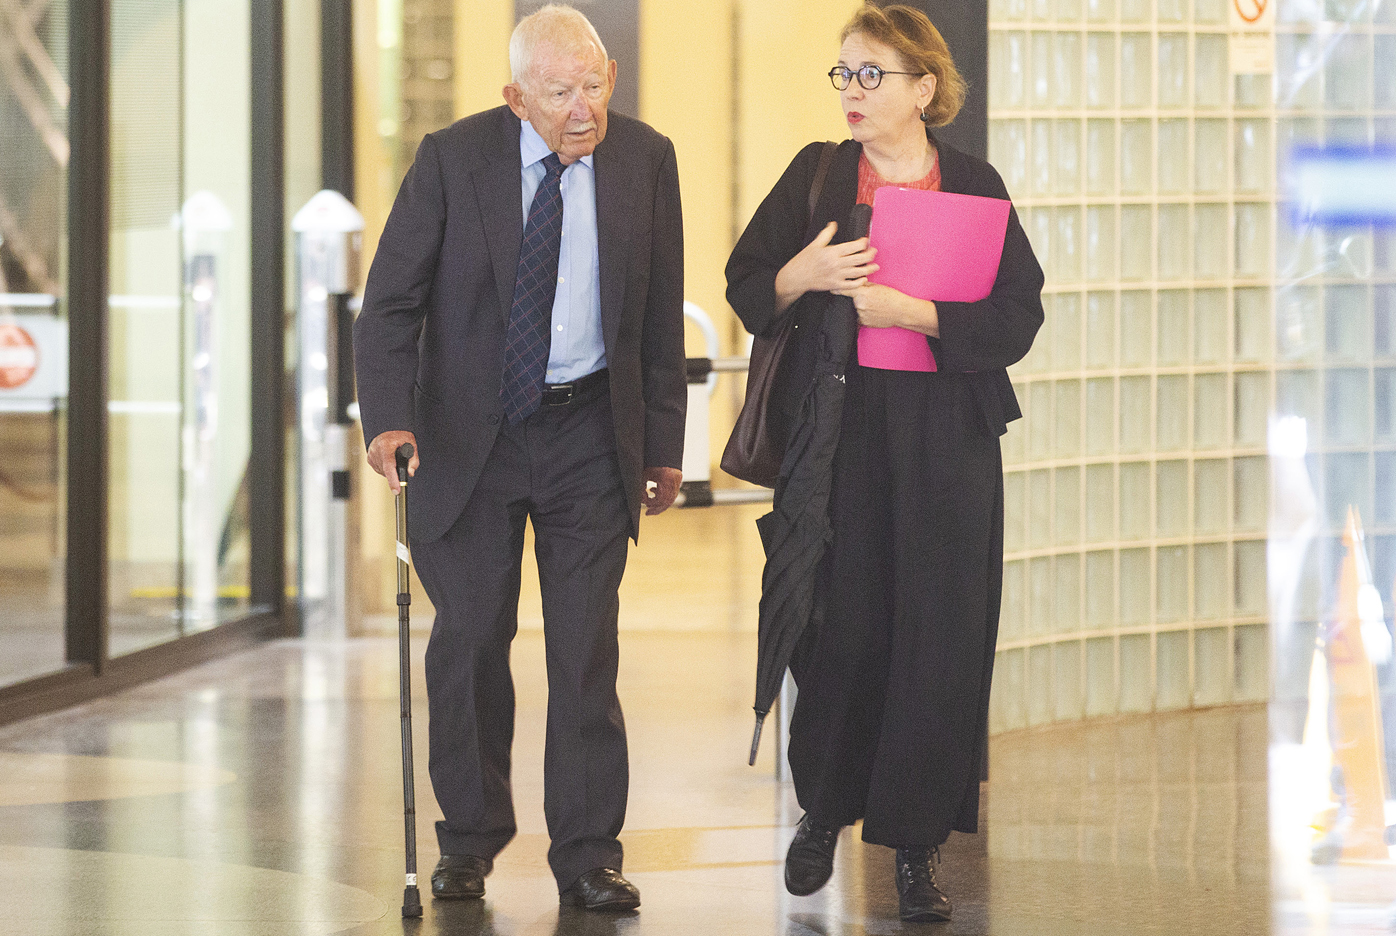 The 82-year-old was arrested at Sydney International Airport in December.